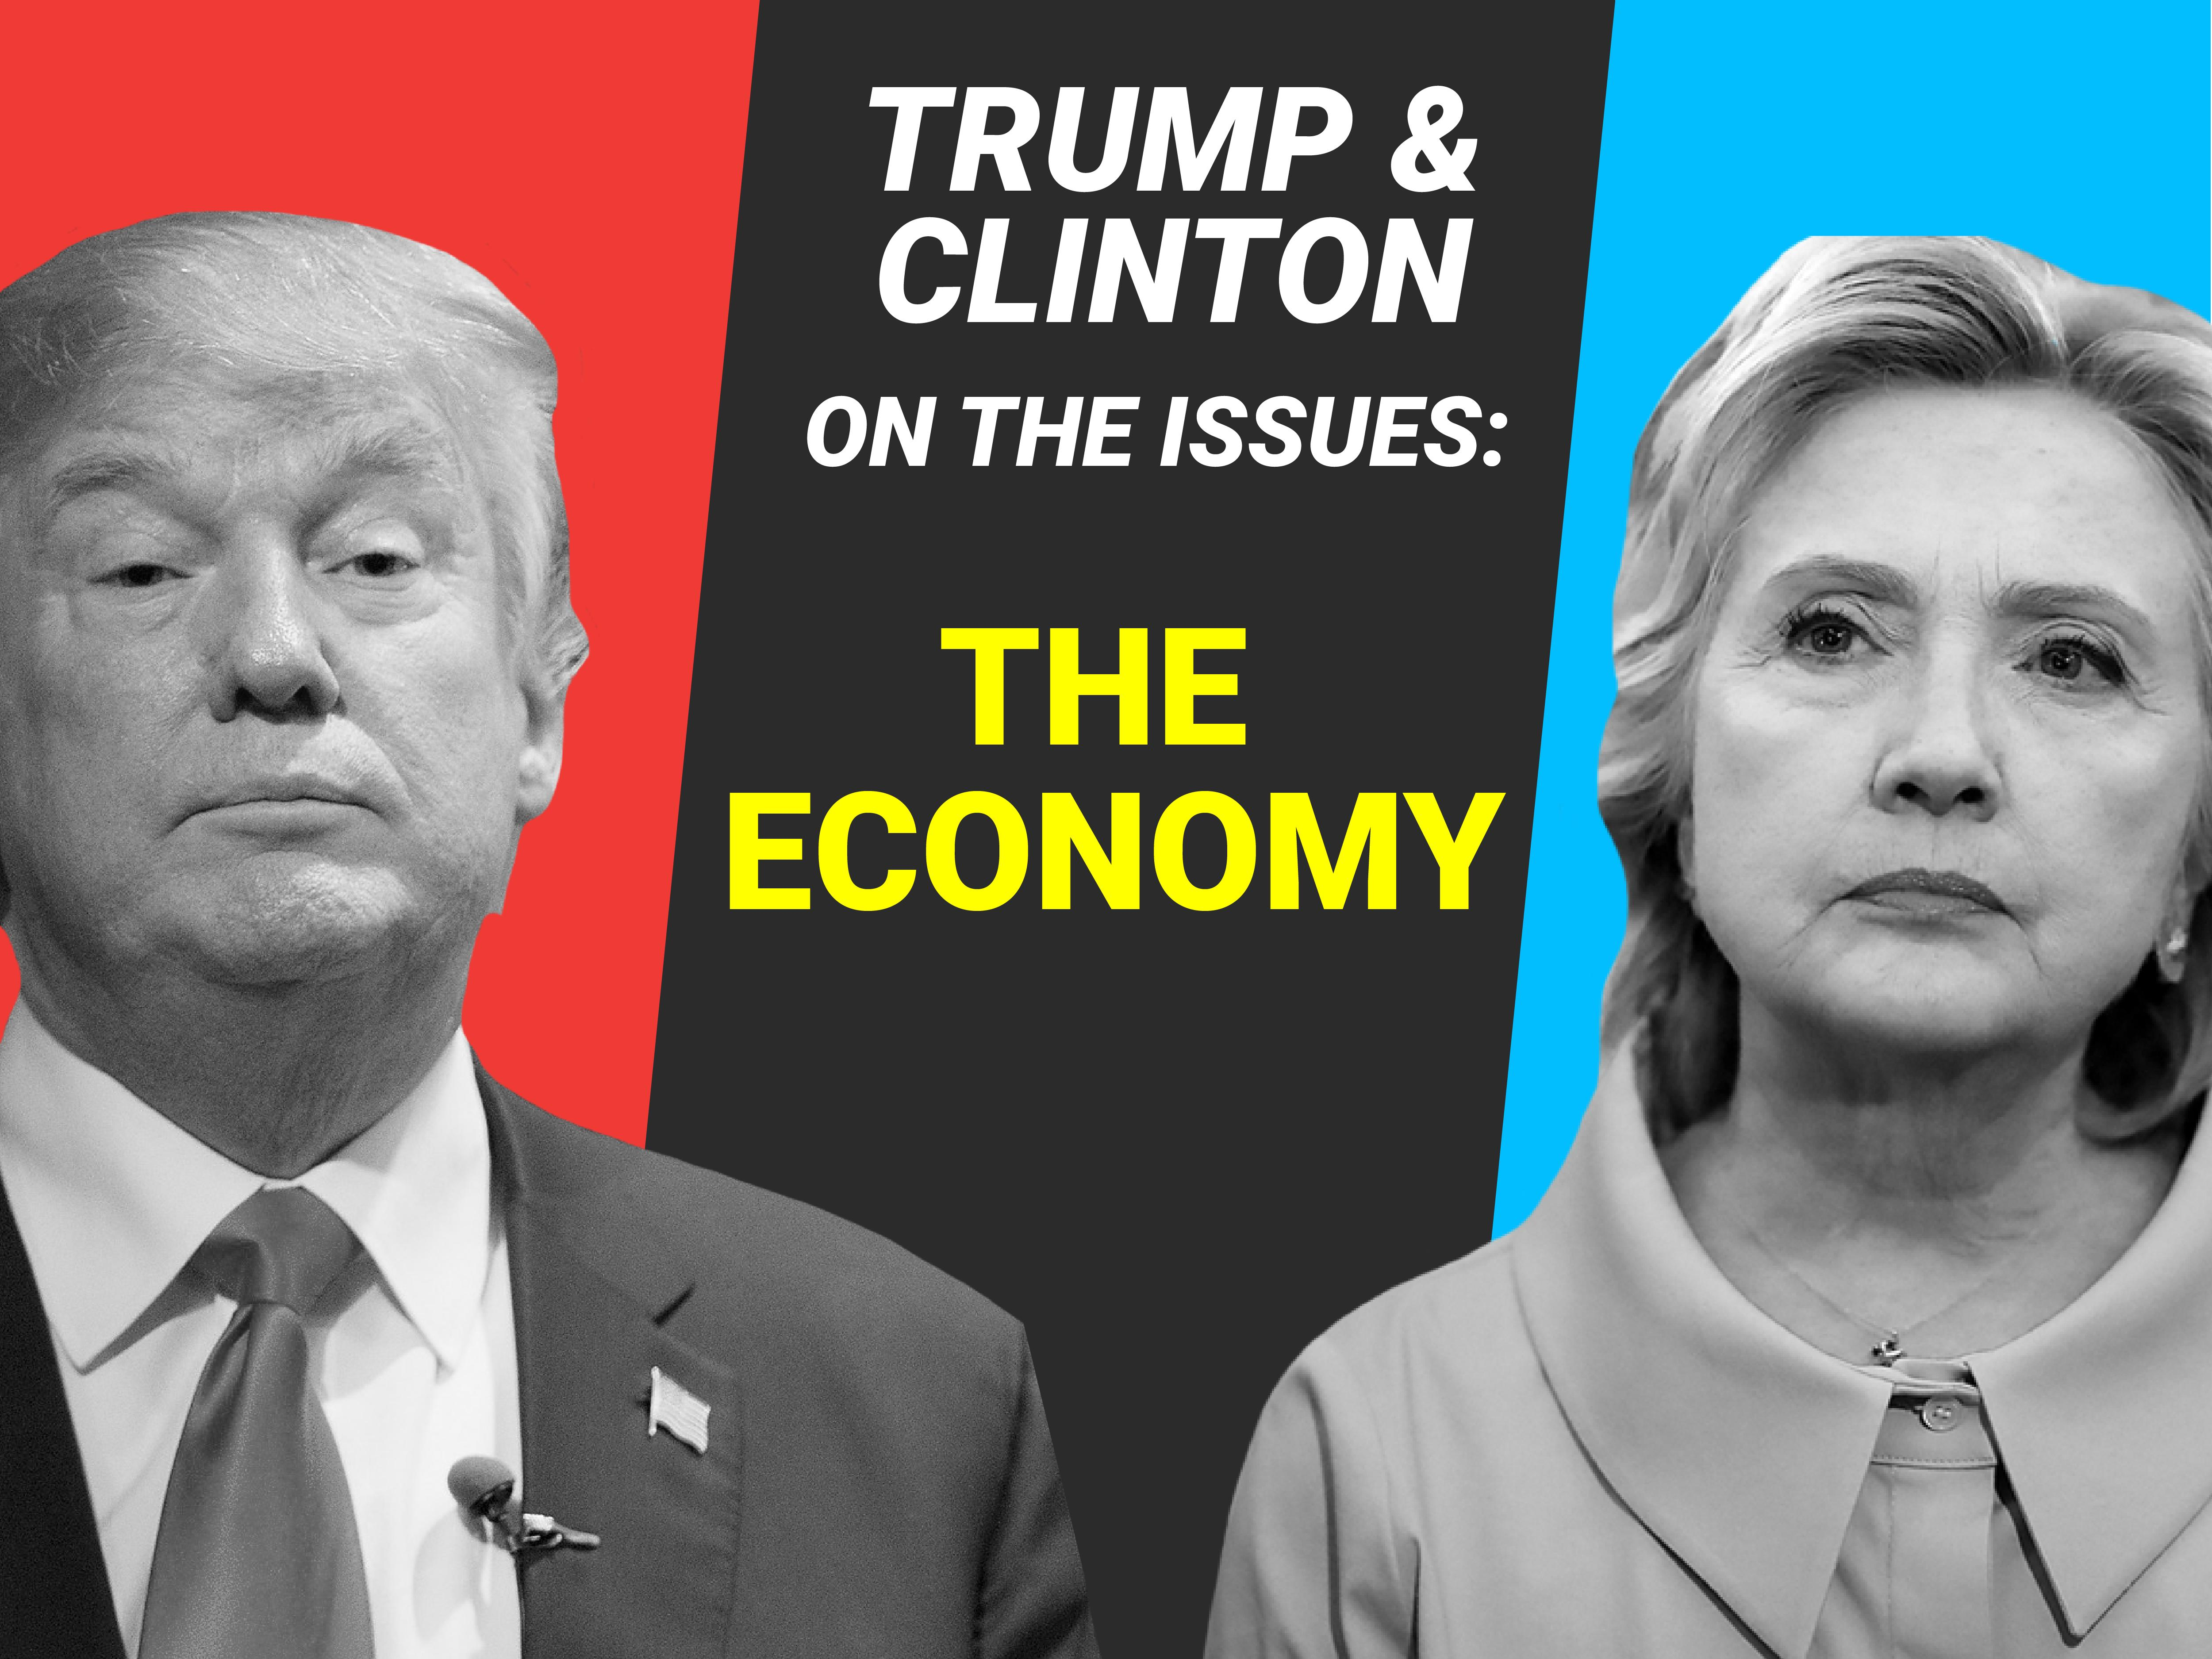 Where Hillary Clinton and Donald Trump stand on the economy